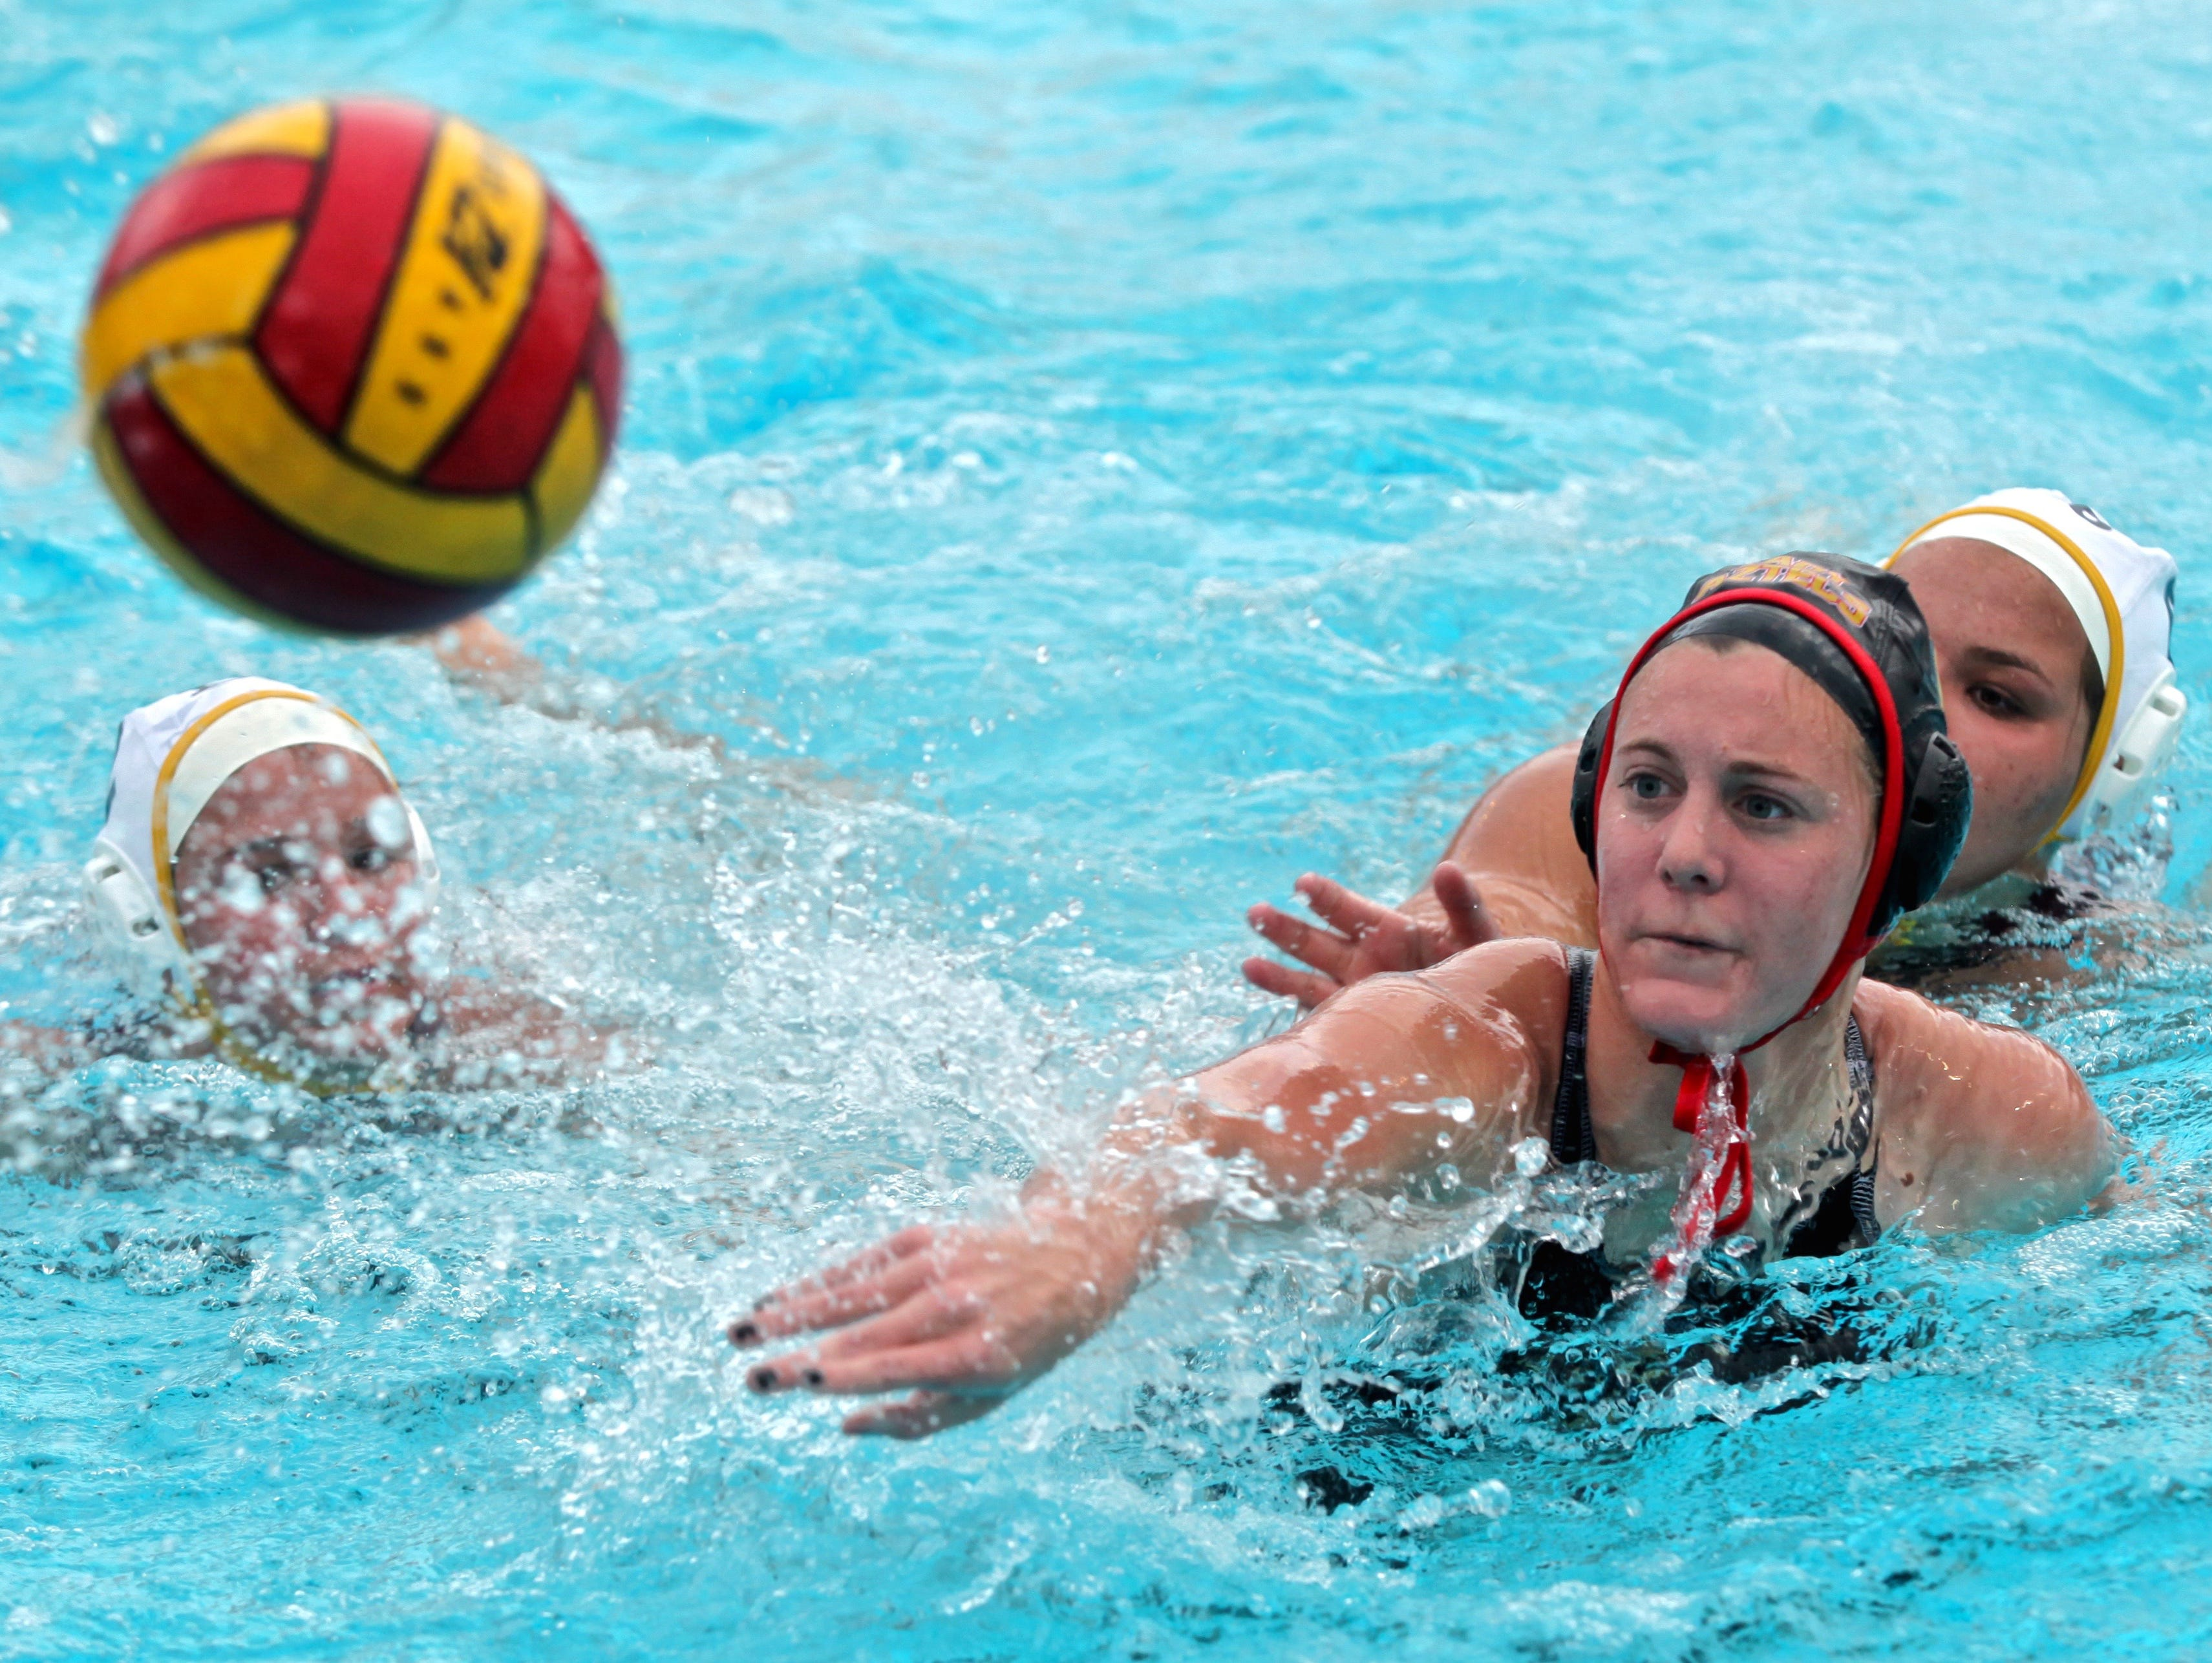 Palm Desert's Elise Stein (7) attempts to score a goal during a match with the La Quinta Blackhawks on Monday.